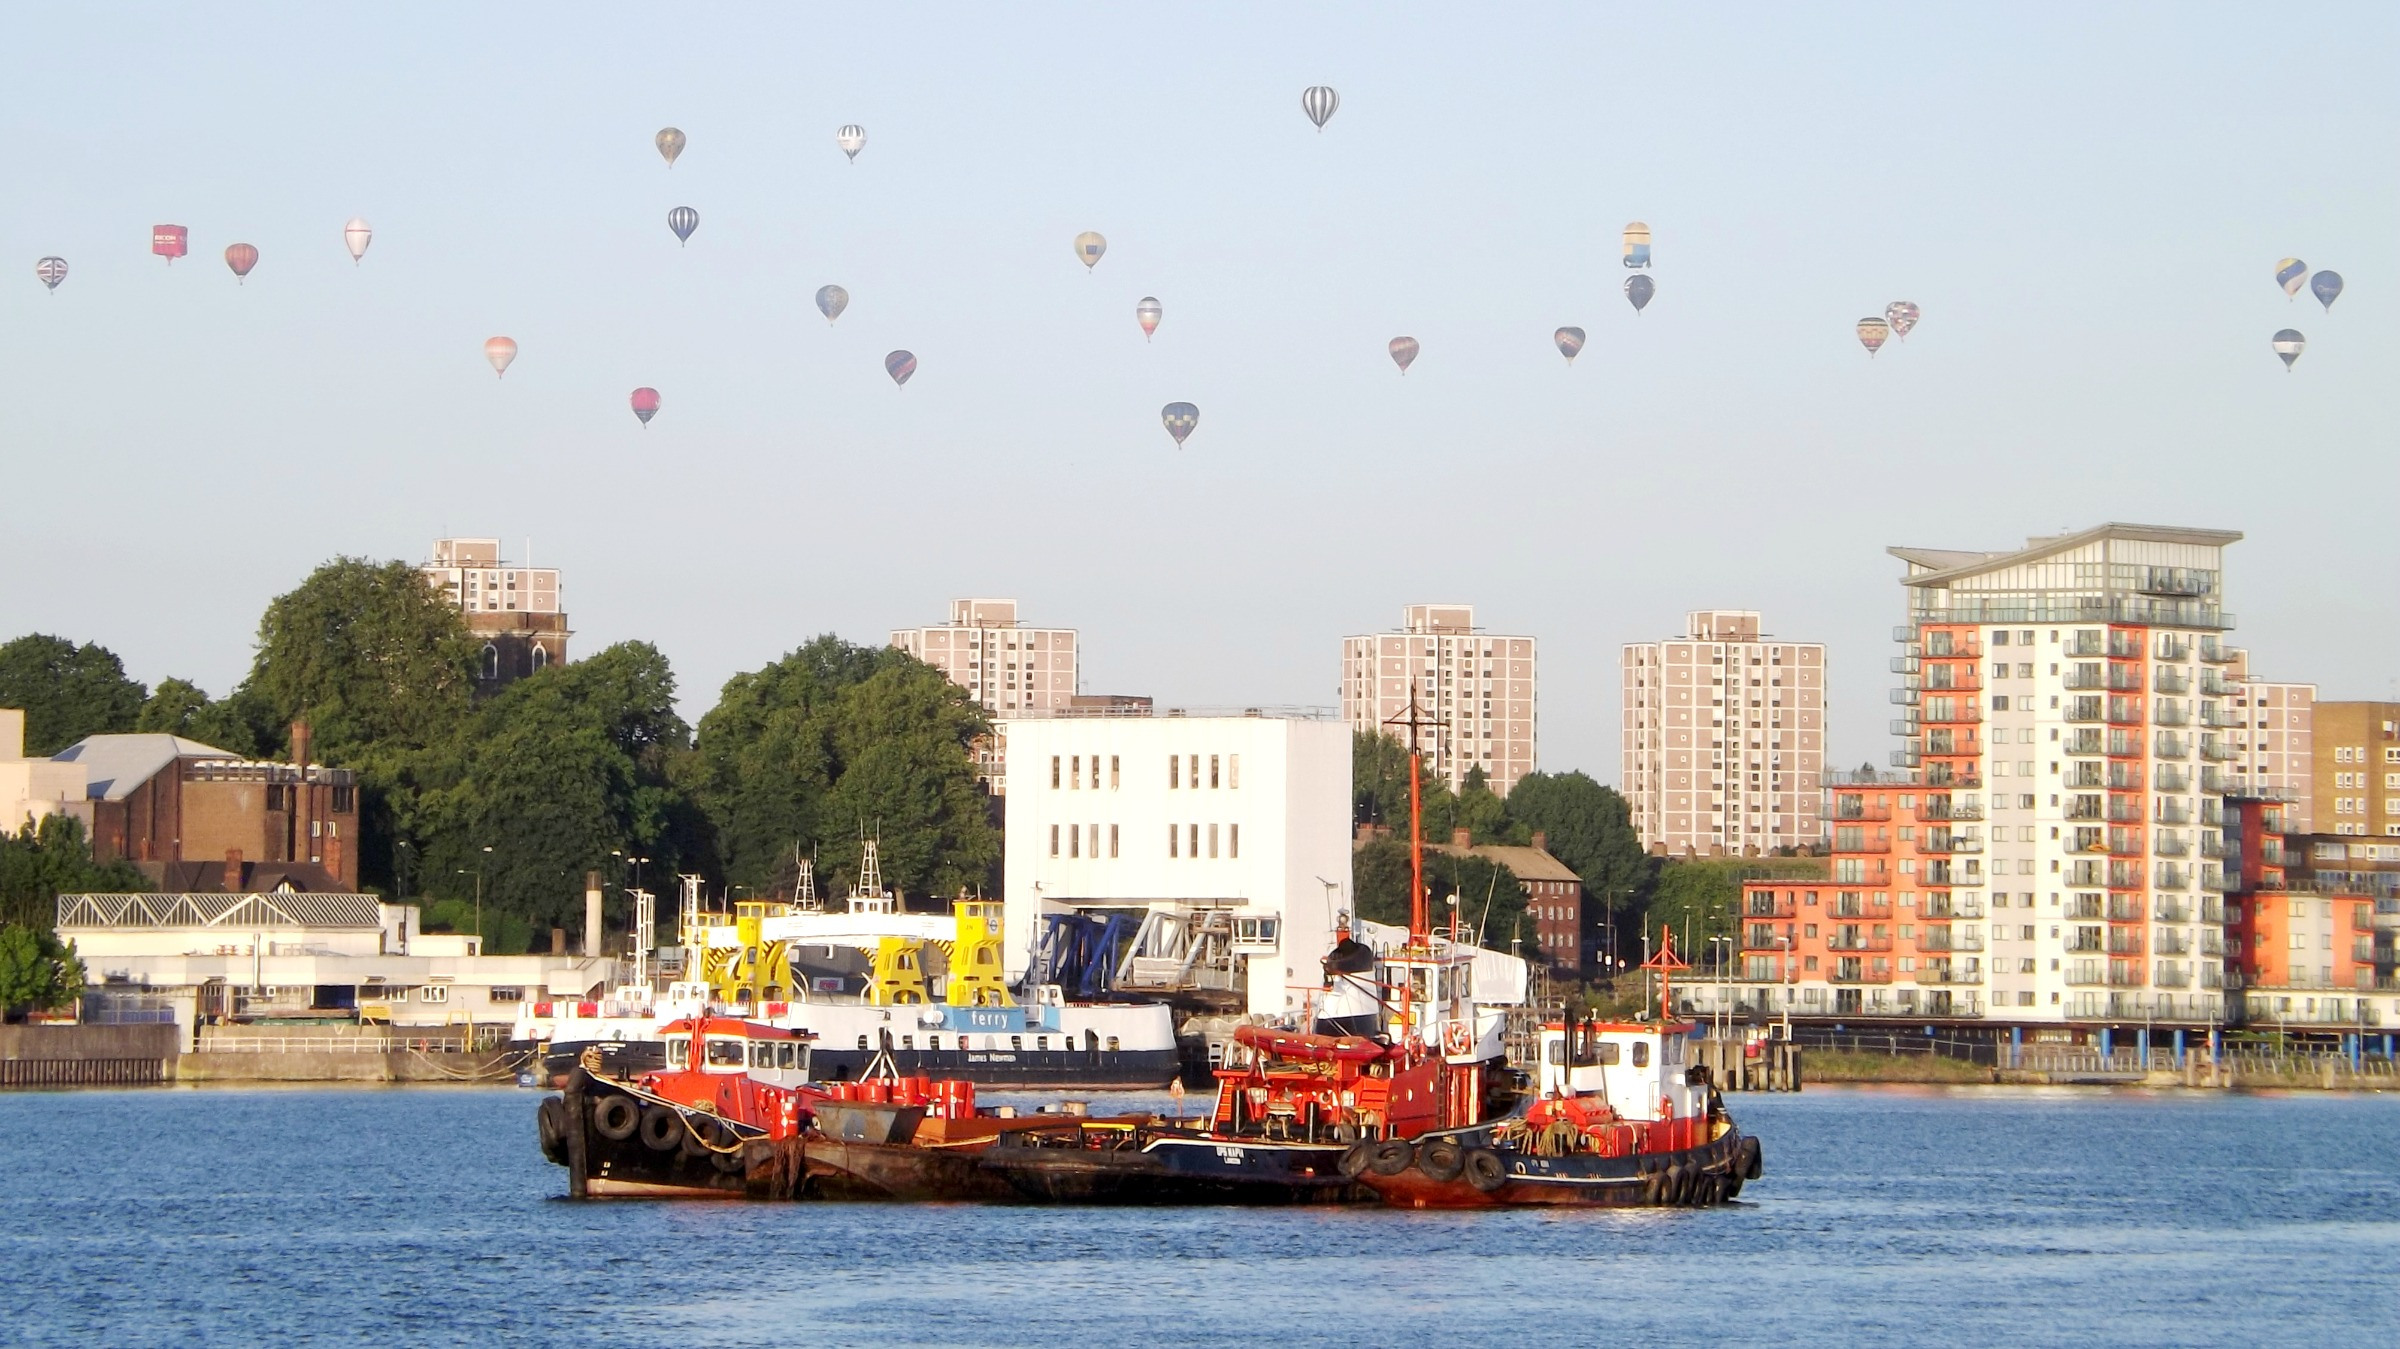 A large group of hot air balloons flying over the Royal Docks